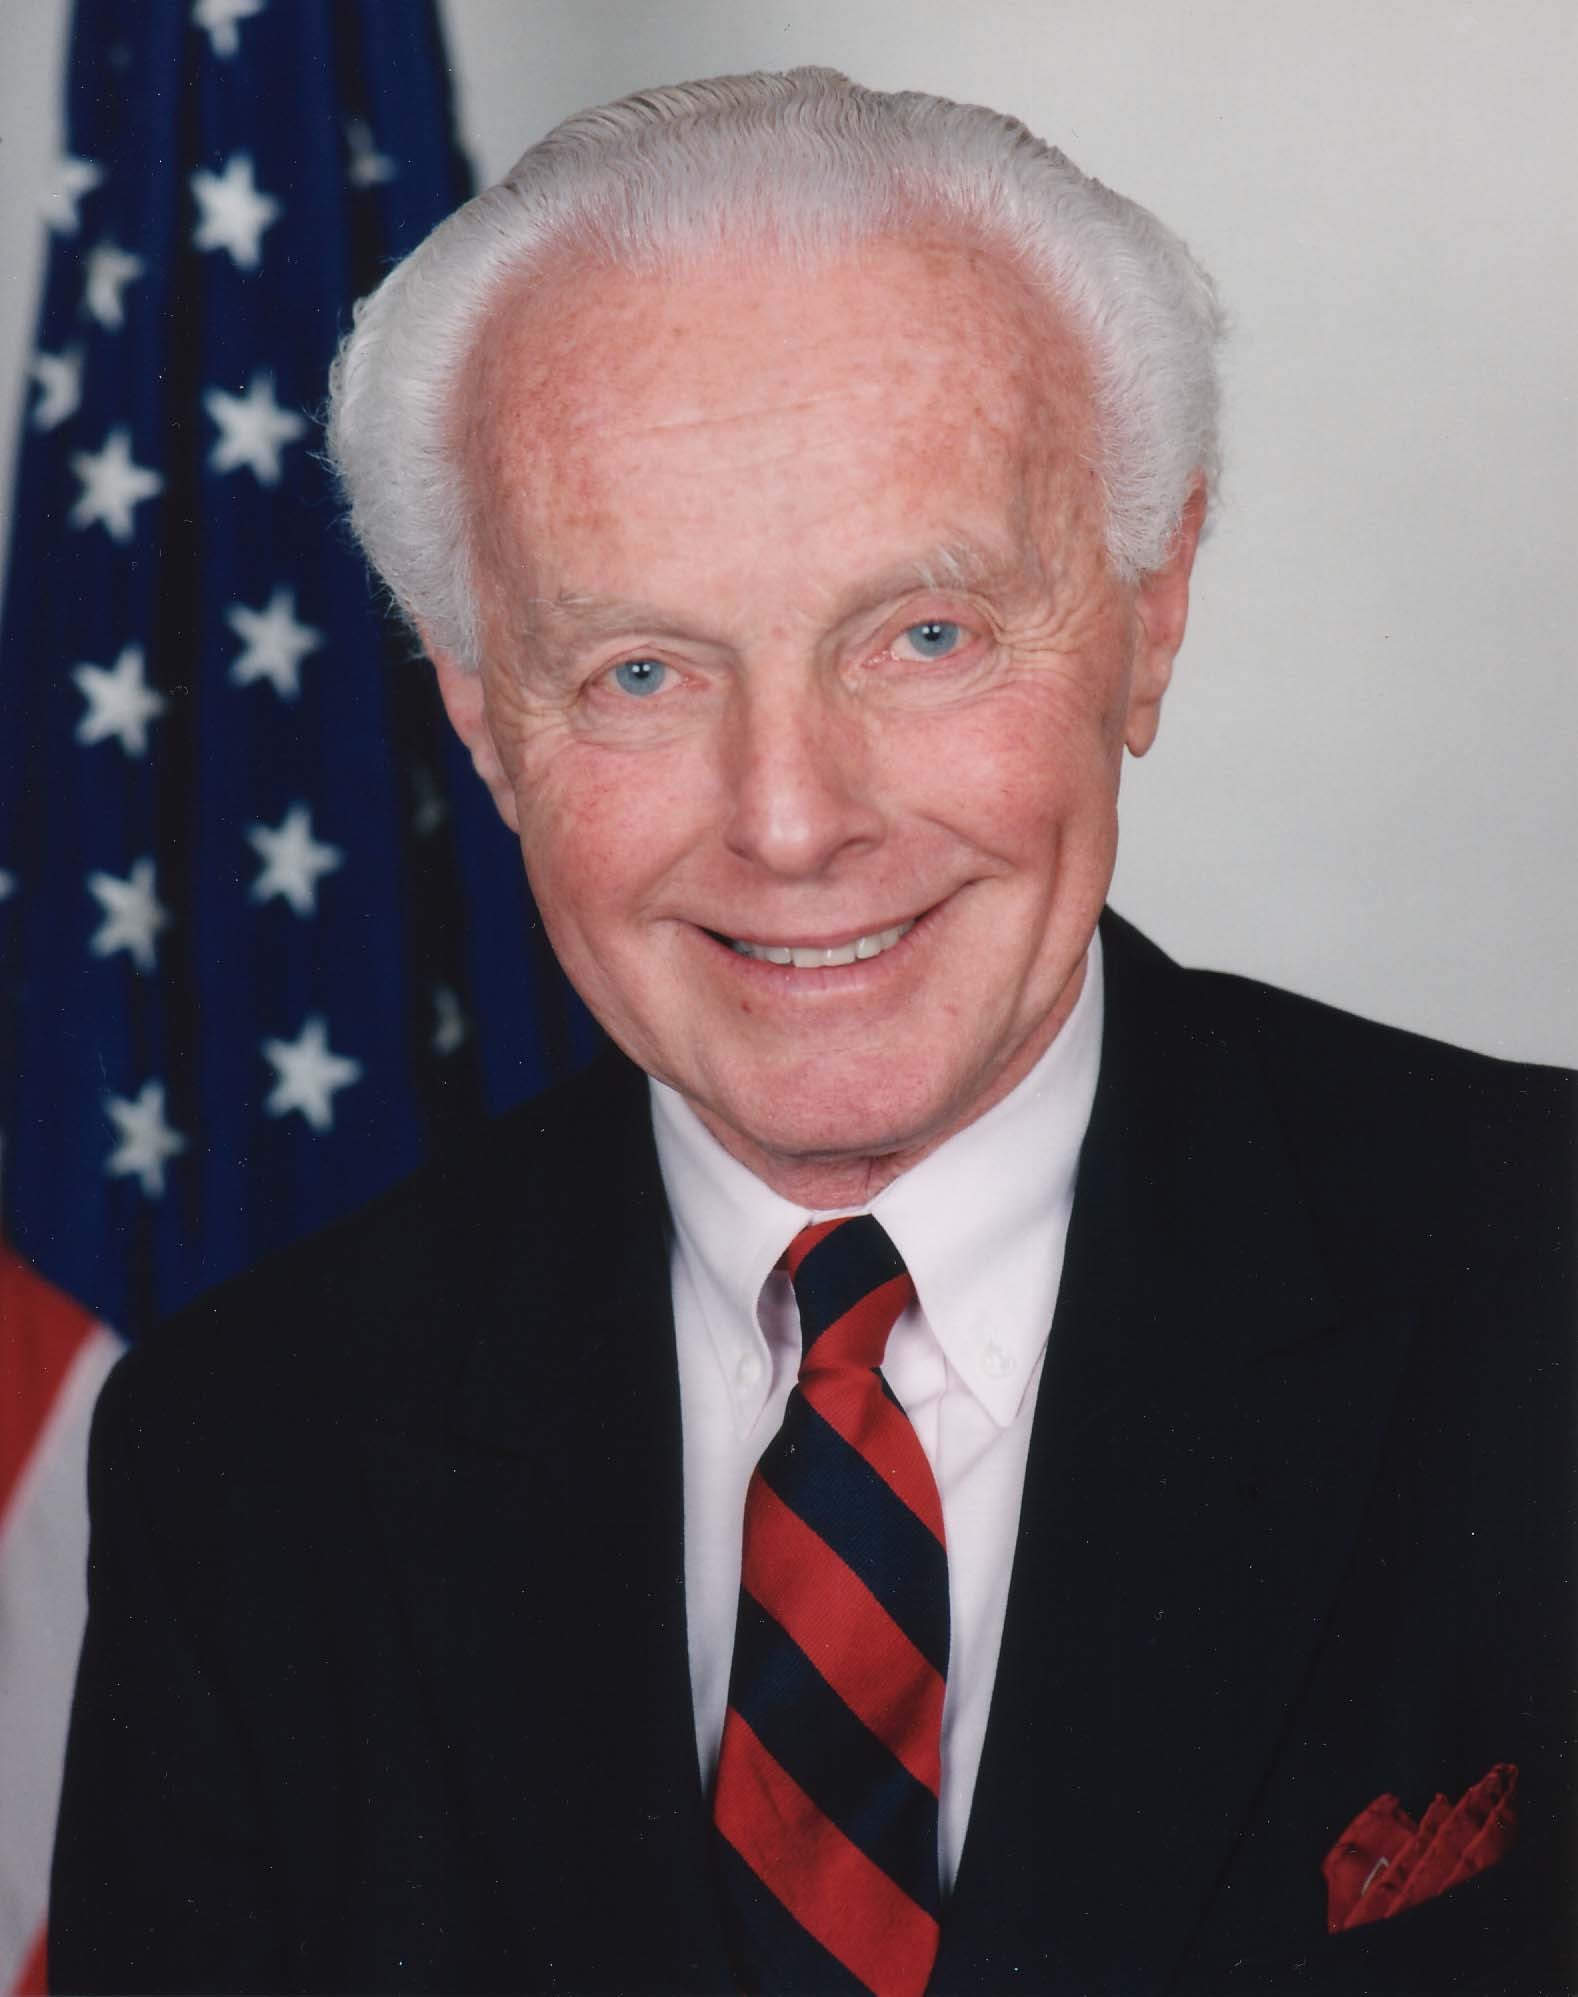 http://upload.wikimedia.org/wikipedia/commons/6/69/Tom_Lantos.jpg